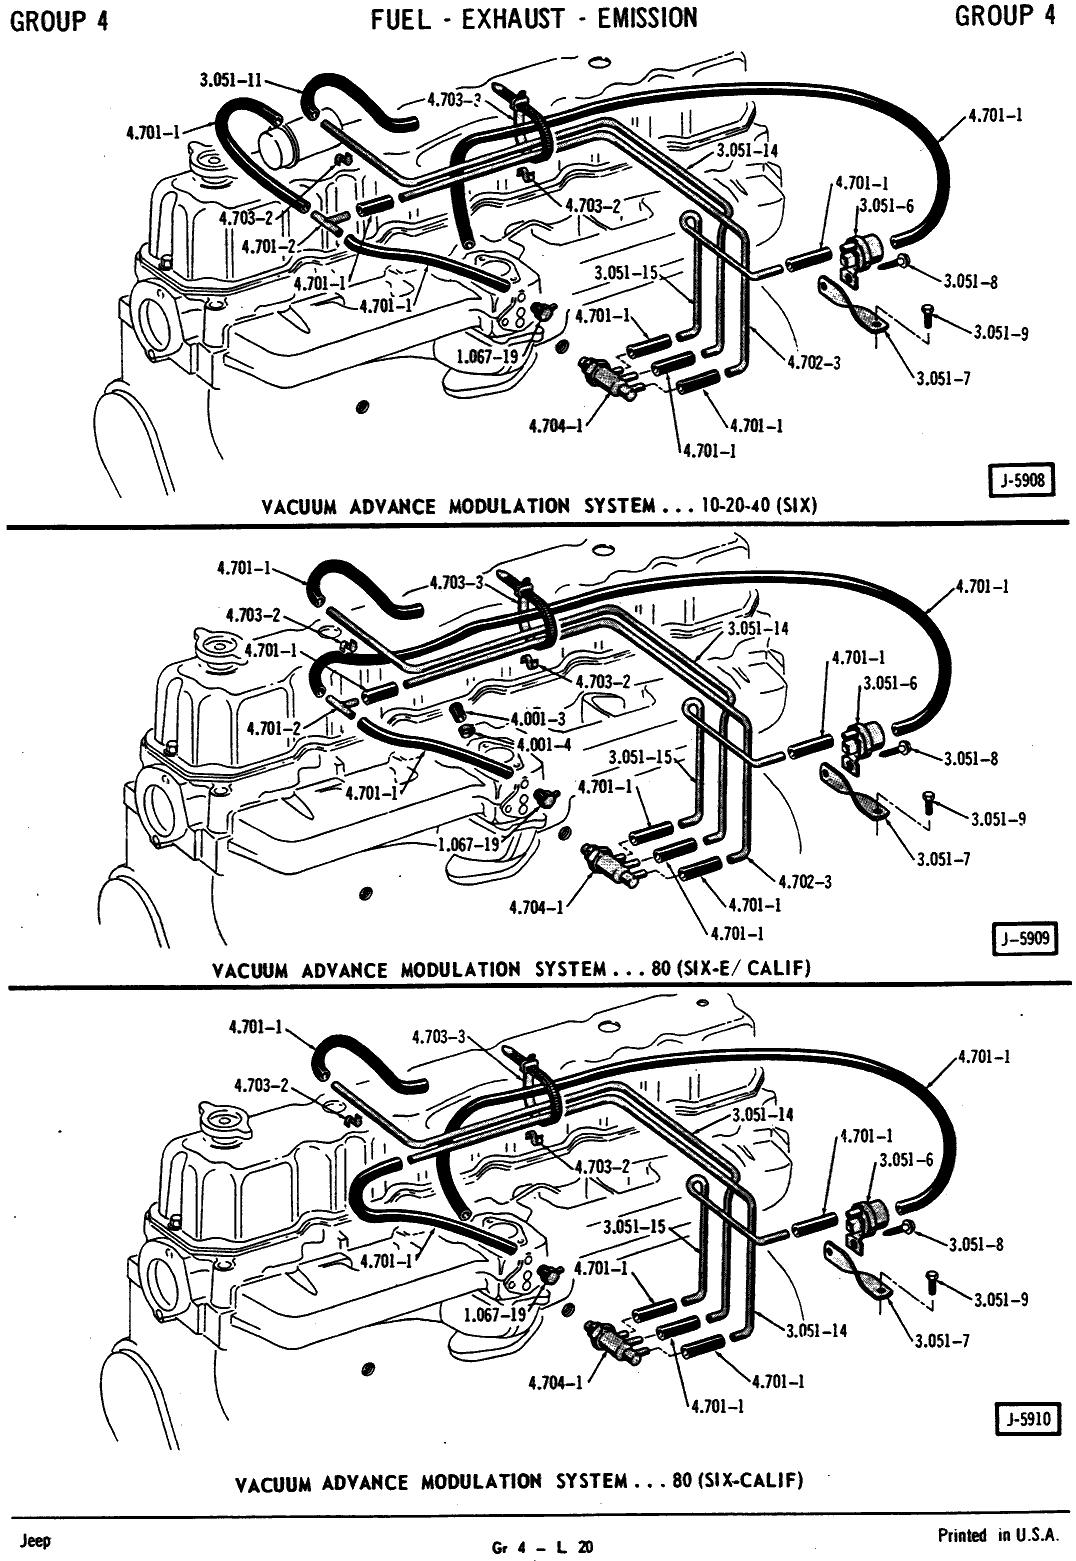 Jeep Yj Fuel Flow Diagram Wiring Data 1988 Cherokee Pump Wrangler 2005 Tj 2 4l Engine Pinterest System